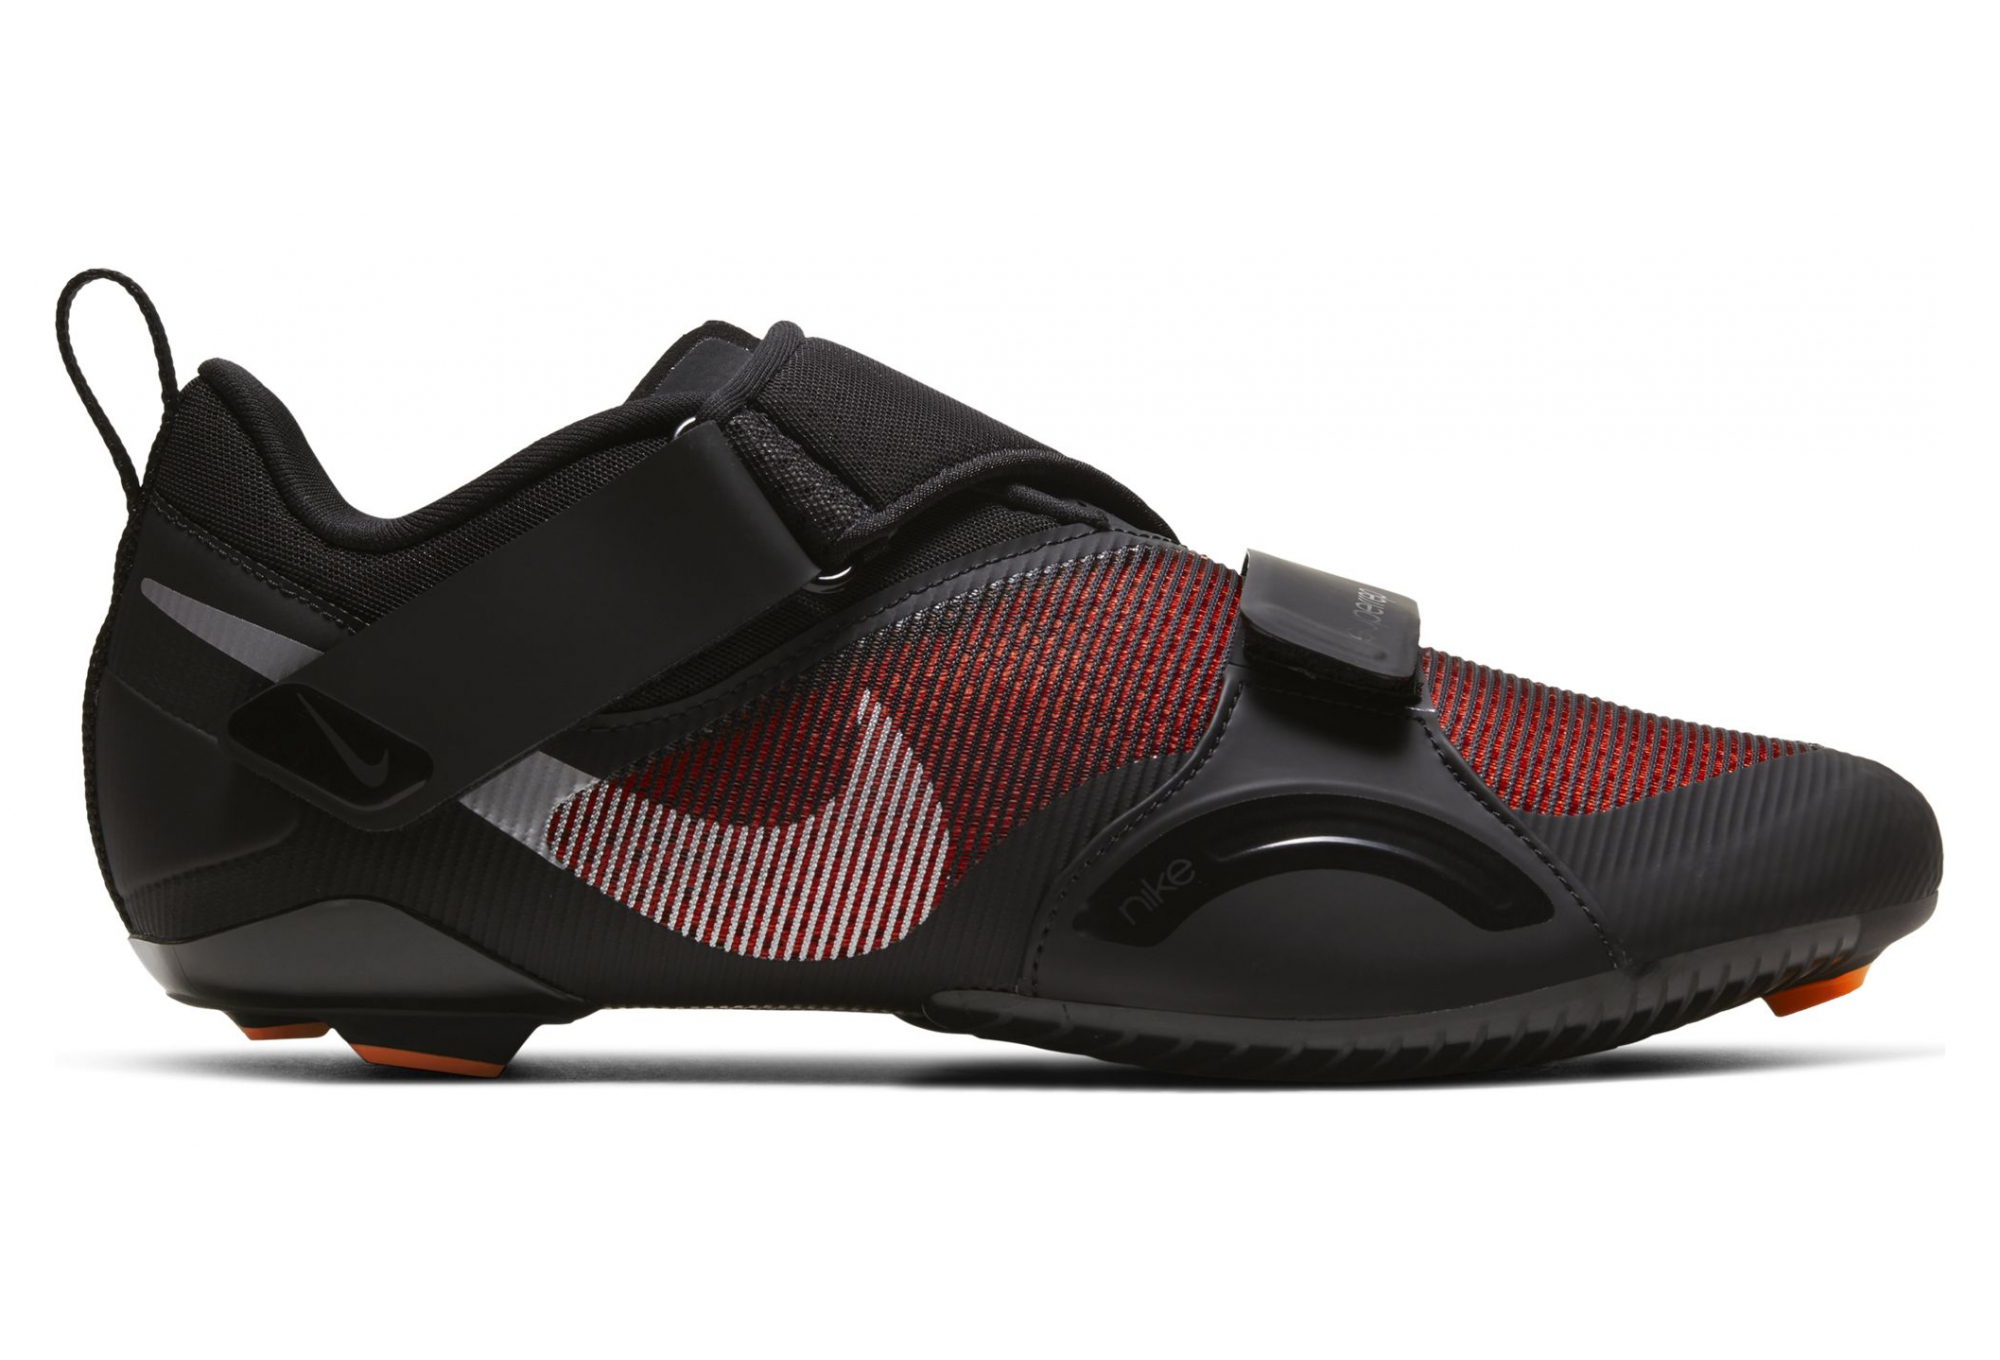 Paire de Chaussures Spinning Nike SuperRep Cycle Noir / Rouge